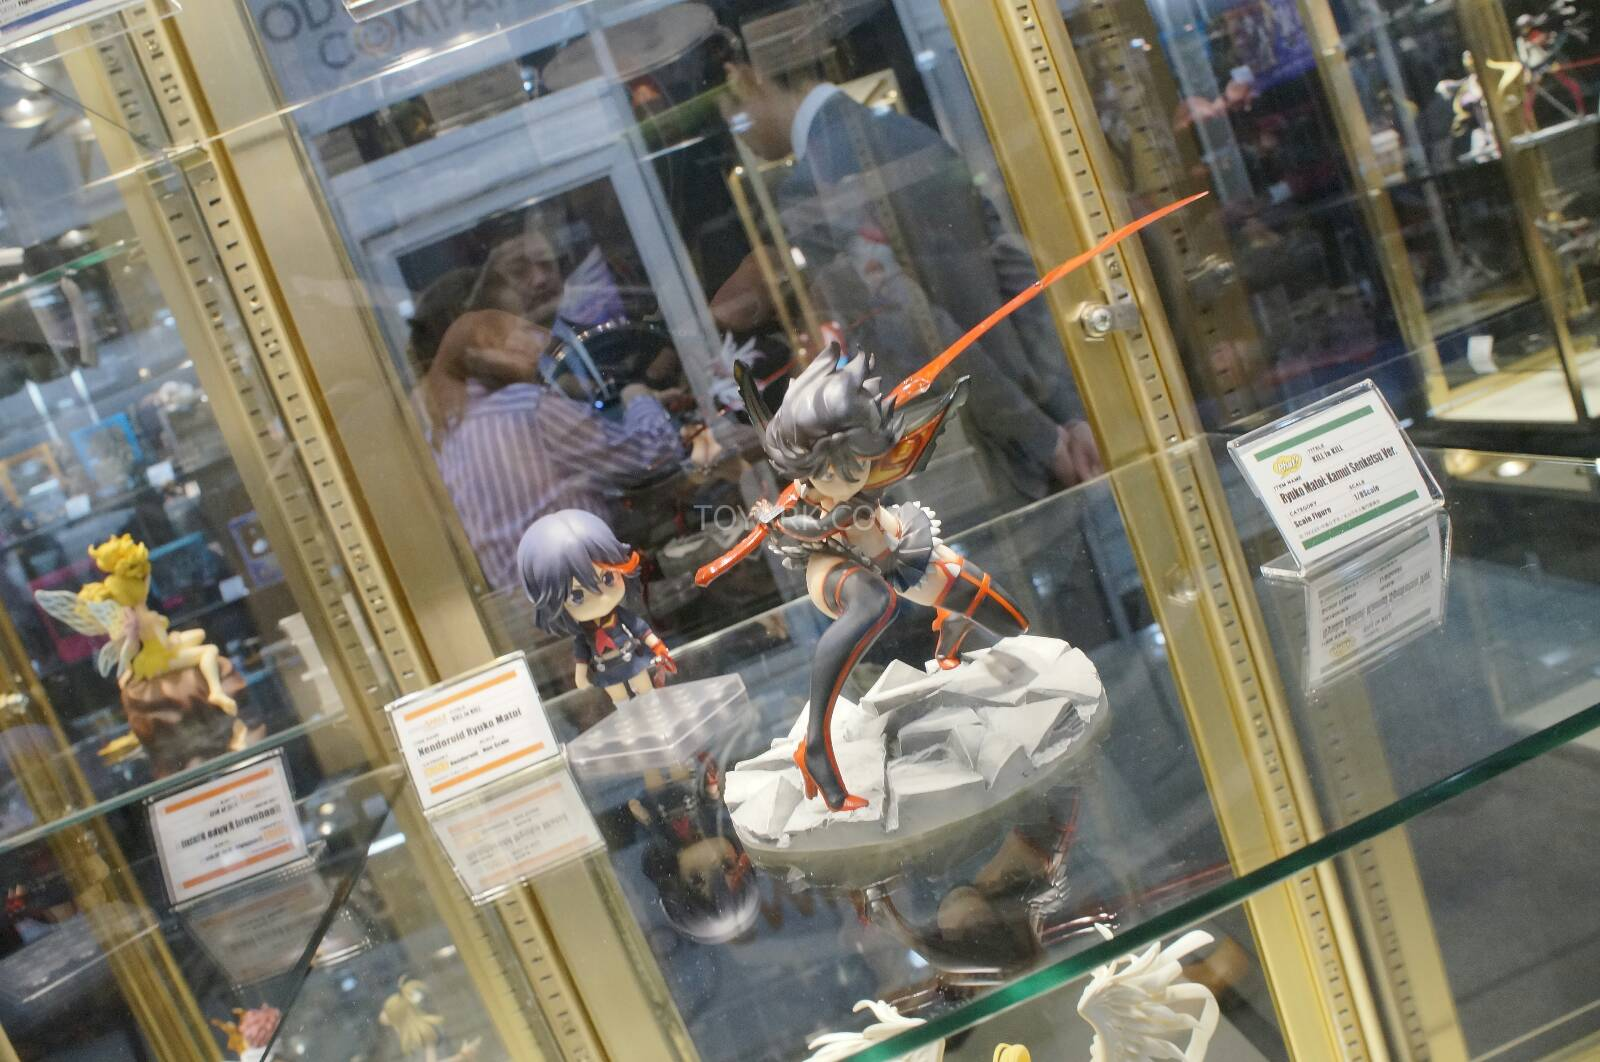 [EVENTO] Toy Fair 2014 - Good Smile Company / Max Factory / Phat Company / FREEing Toy-Fair-2014-Good-Smile-and-Max-Factory-Display-042